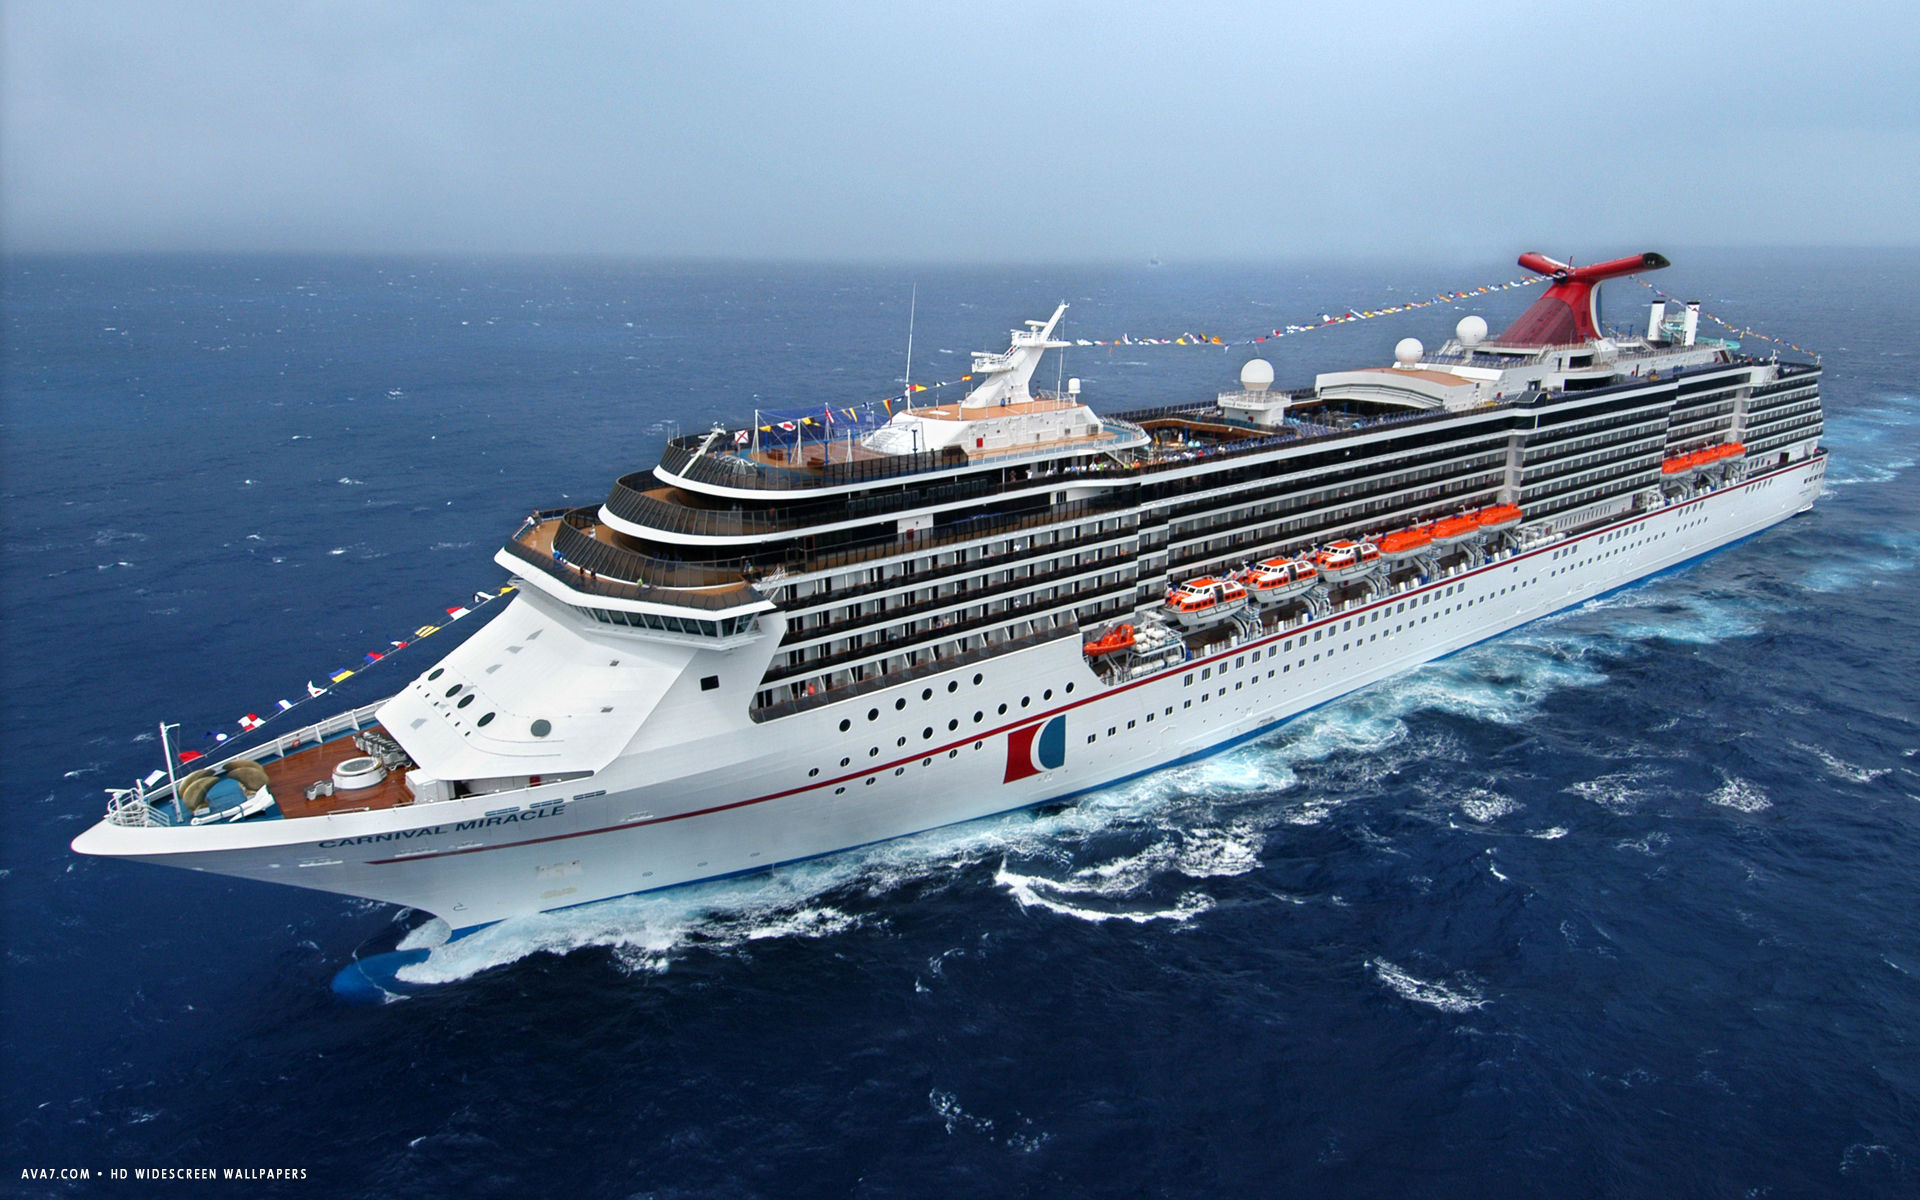 carnival miracle cruise ship hd widescreen wallpaper cruise ships 1920x1200